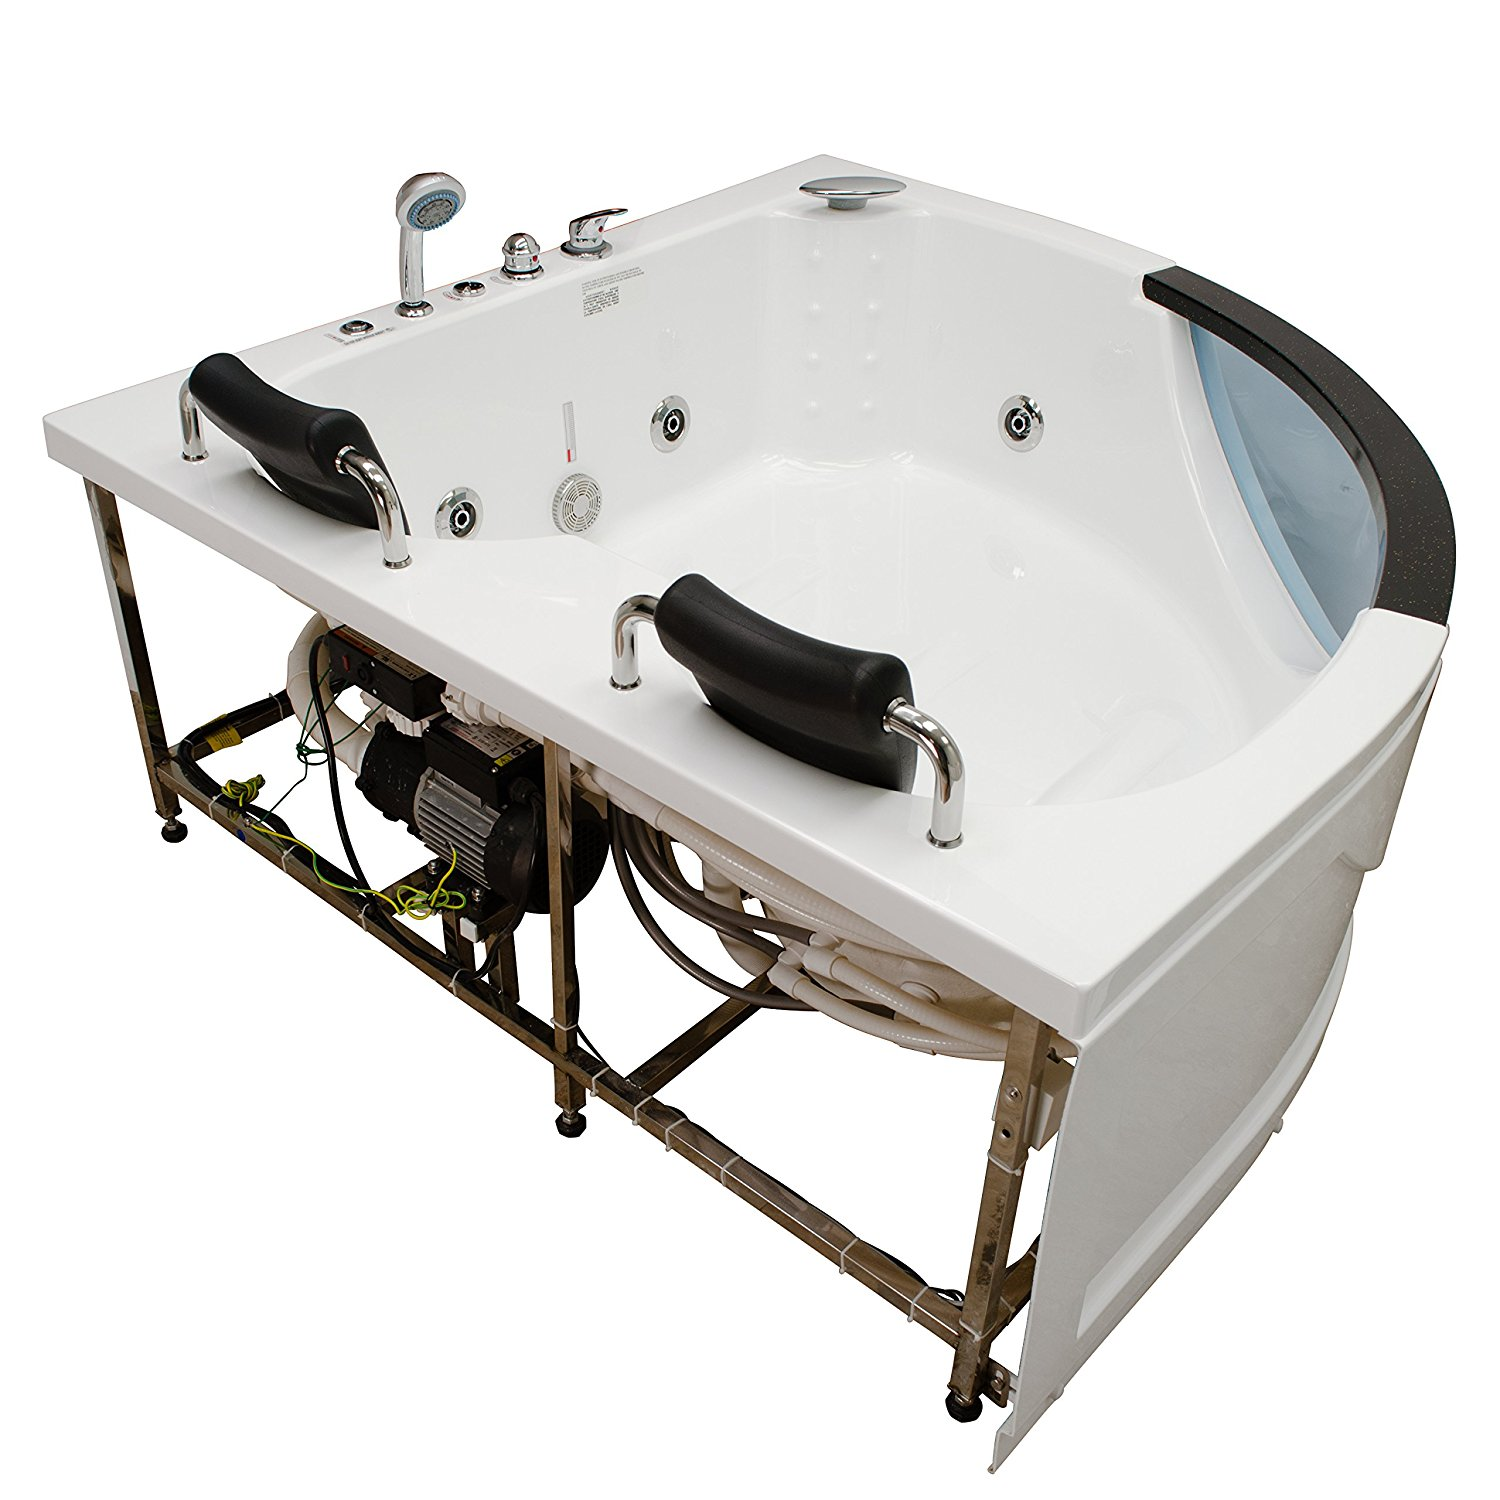 Two Person Corner Whirlpool Hot Tub perfect for relaxation and romance.